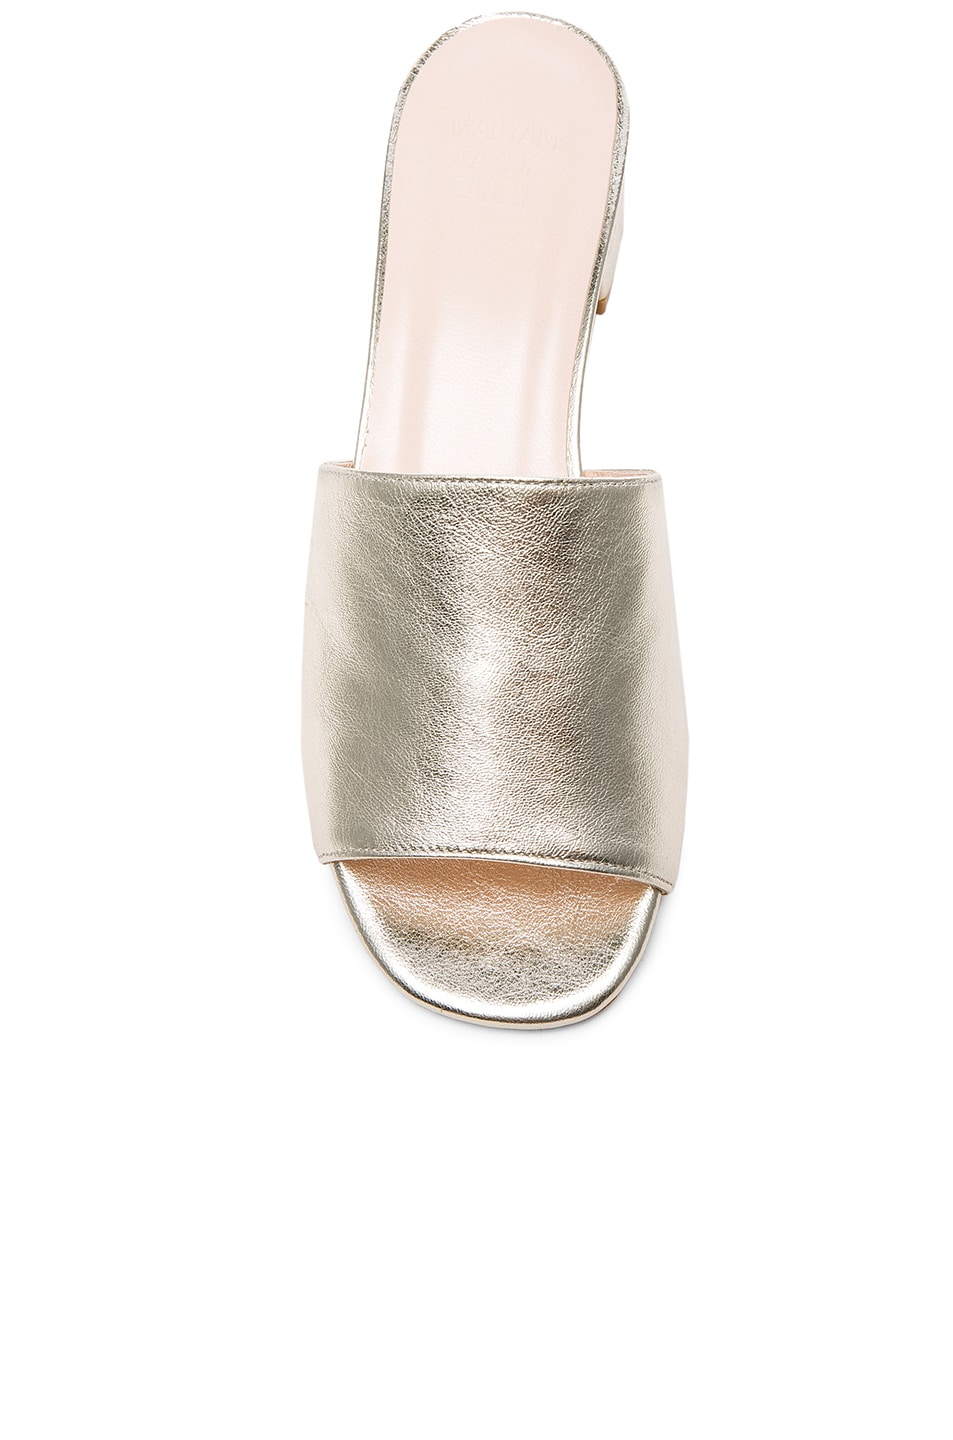 Image 4 of Maryam Nassir Zadeh Leather Sophie Slides in Prosecco Metallic